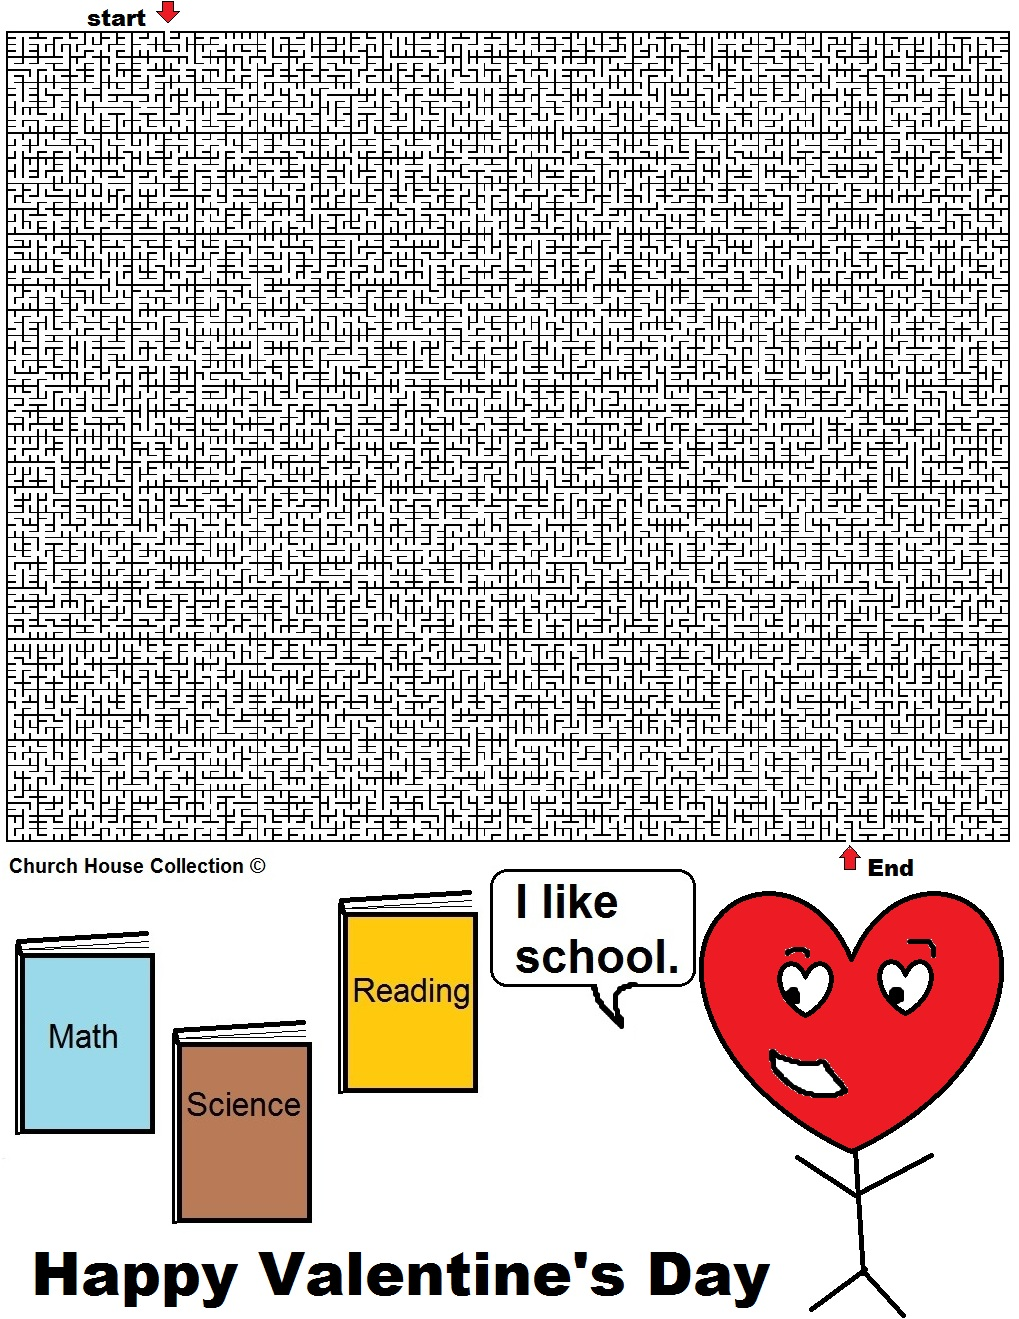 Uncategorized Valentine Mazes church house collection blog valentines day mazes for school these are teachers to print off and use class or them your kids at home